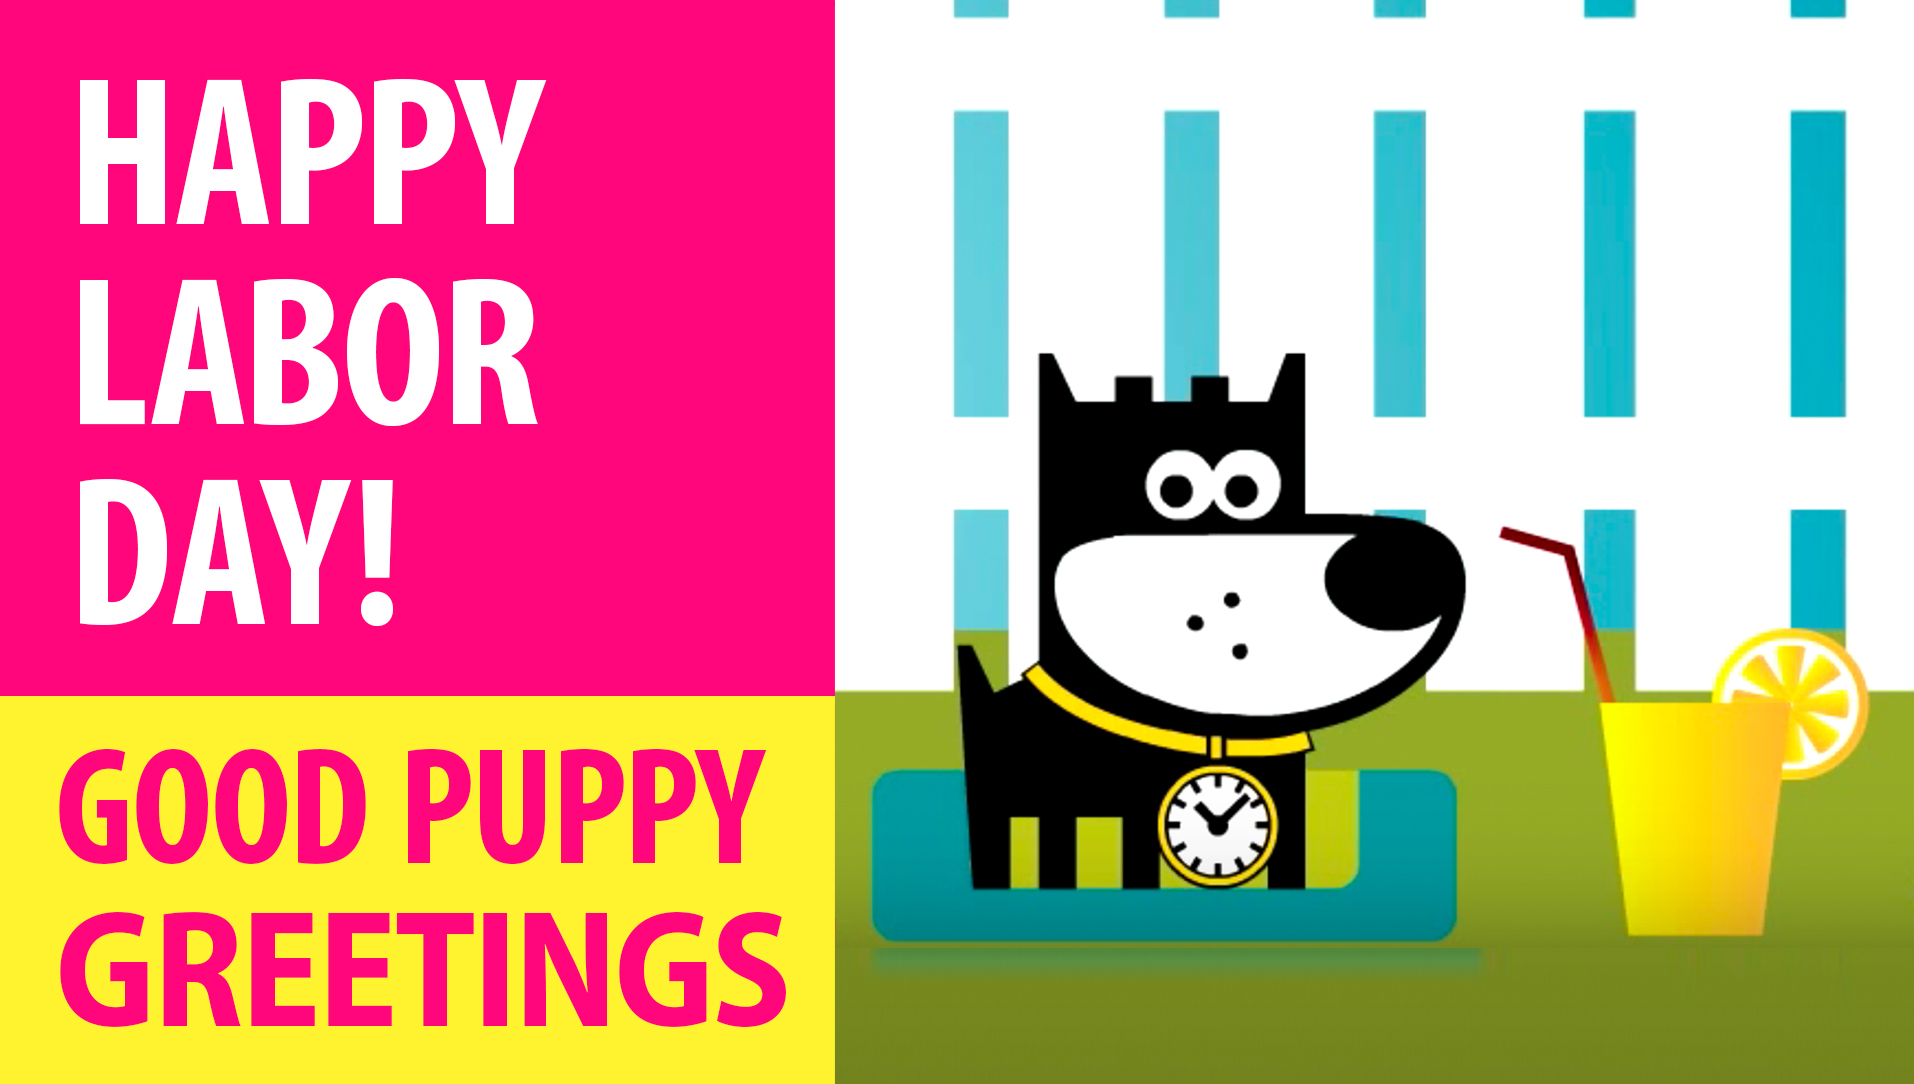 Happy Labor Day! Animated Greeting Cards - Free E-Cards By GOOD PUPPY